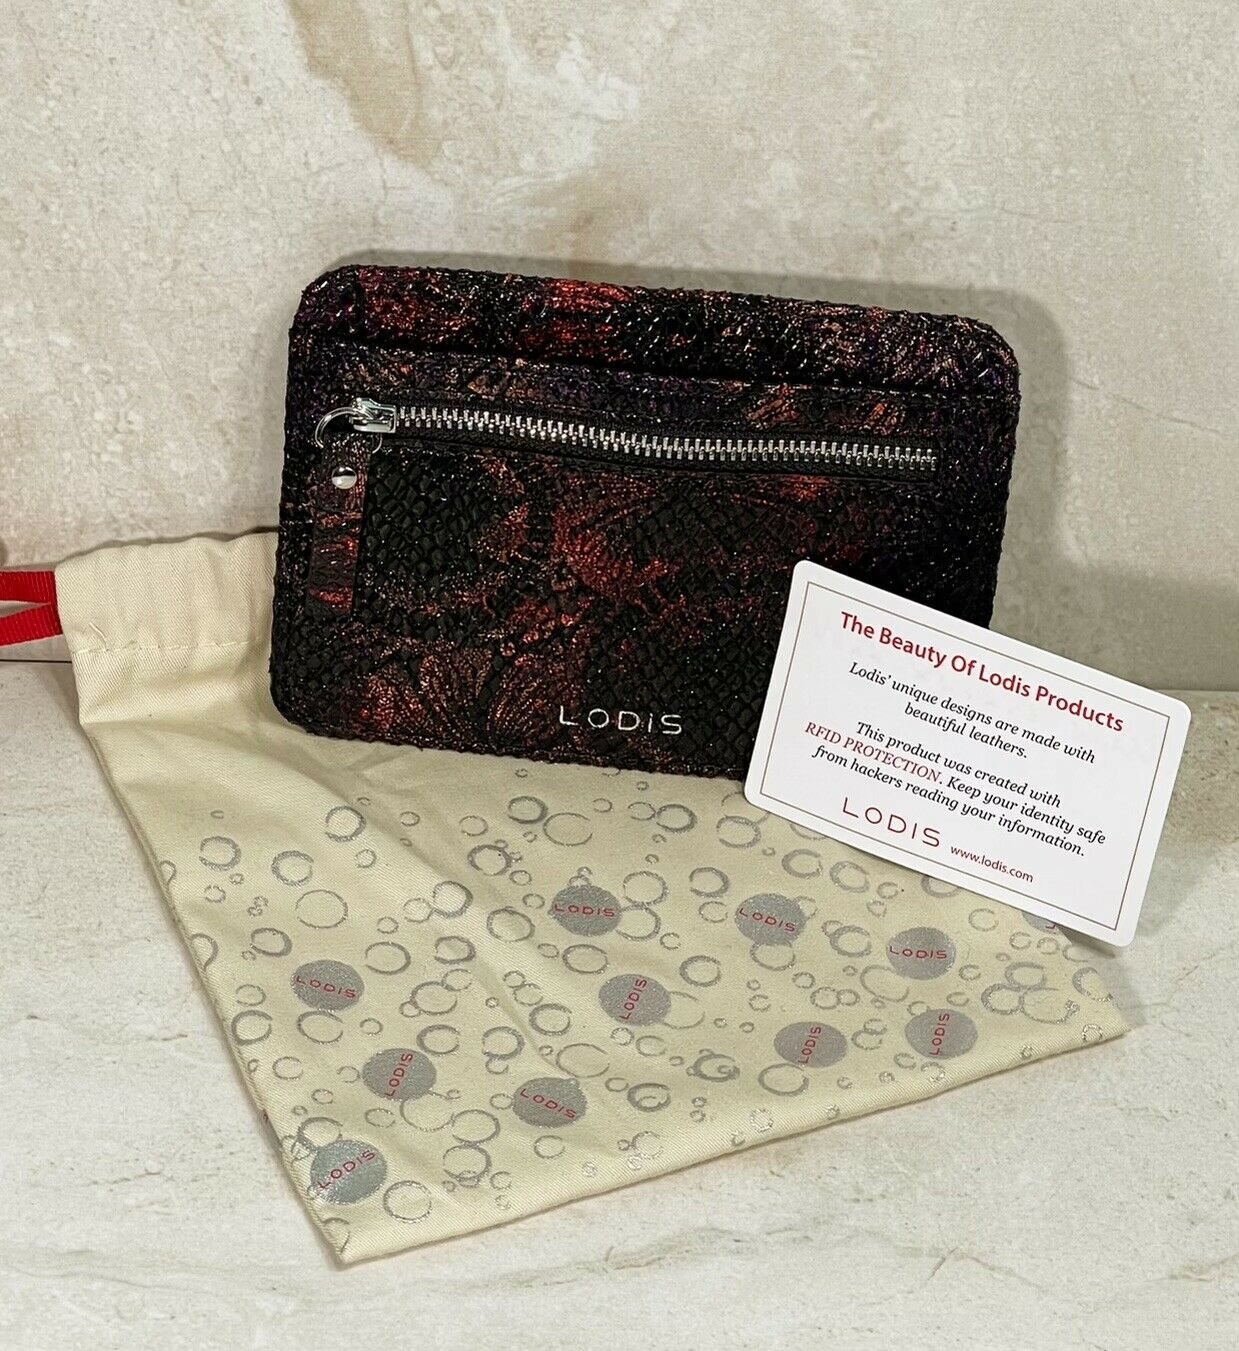 """Lodis Women's Holder Wallet 5.5""""x 4"""" RFID BLOCKING Leather w/Dust Bag New WOT"""